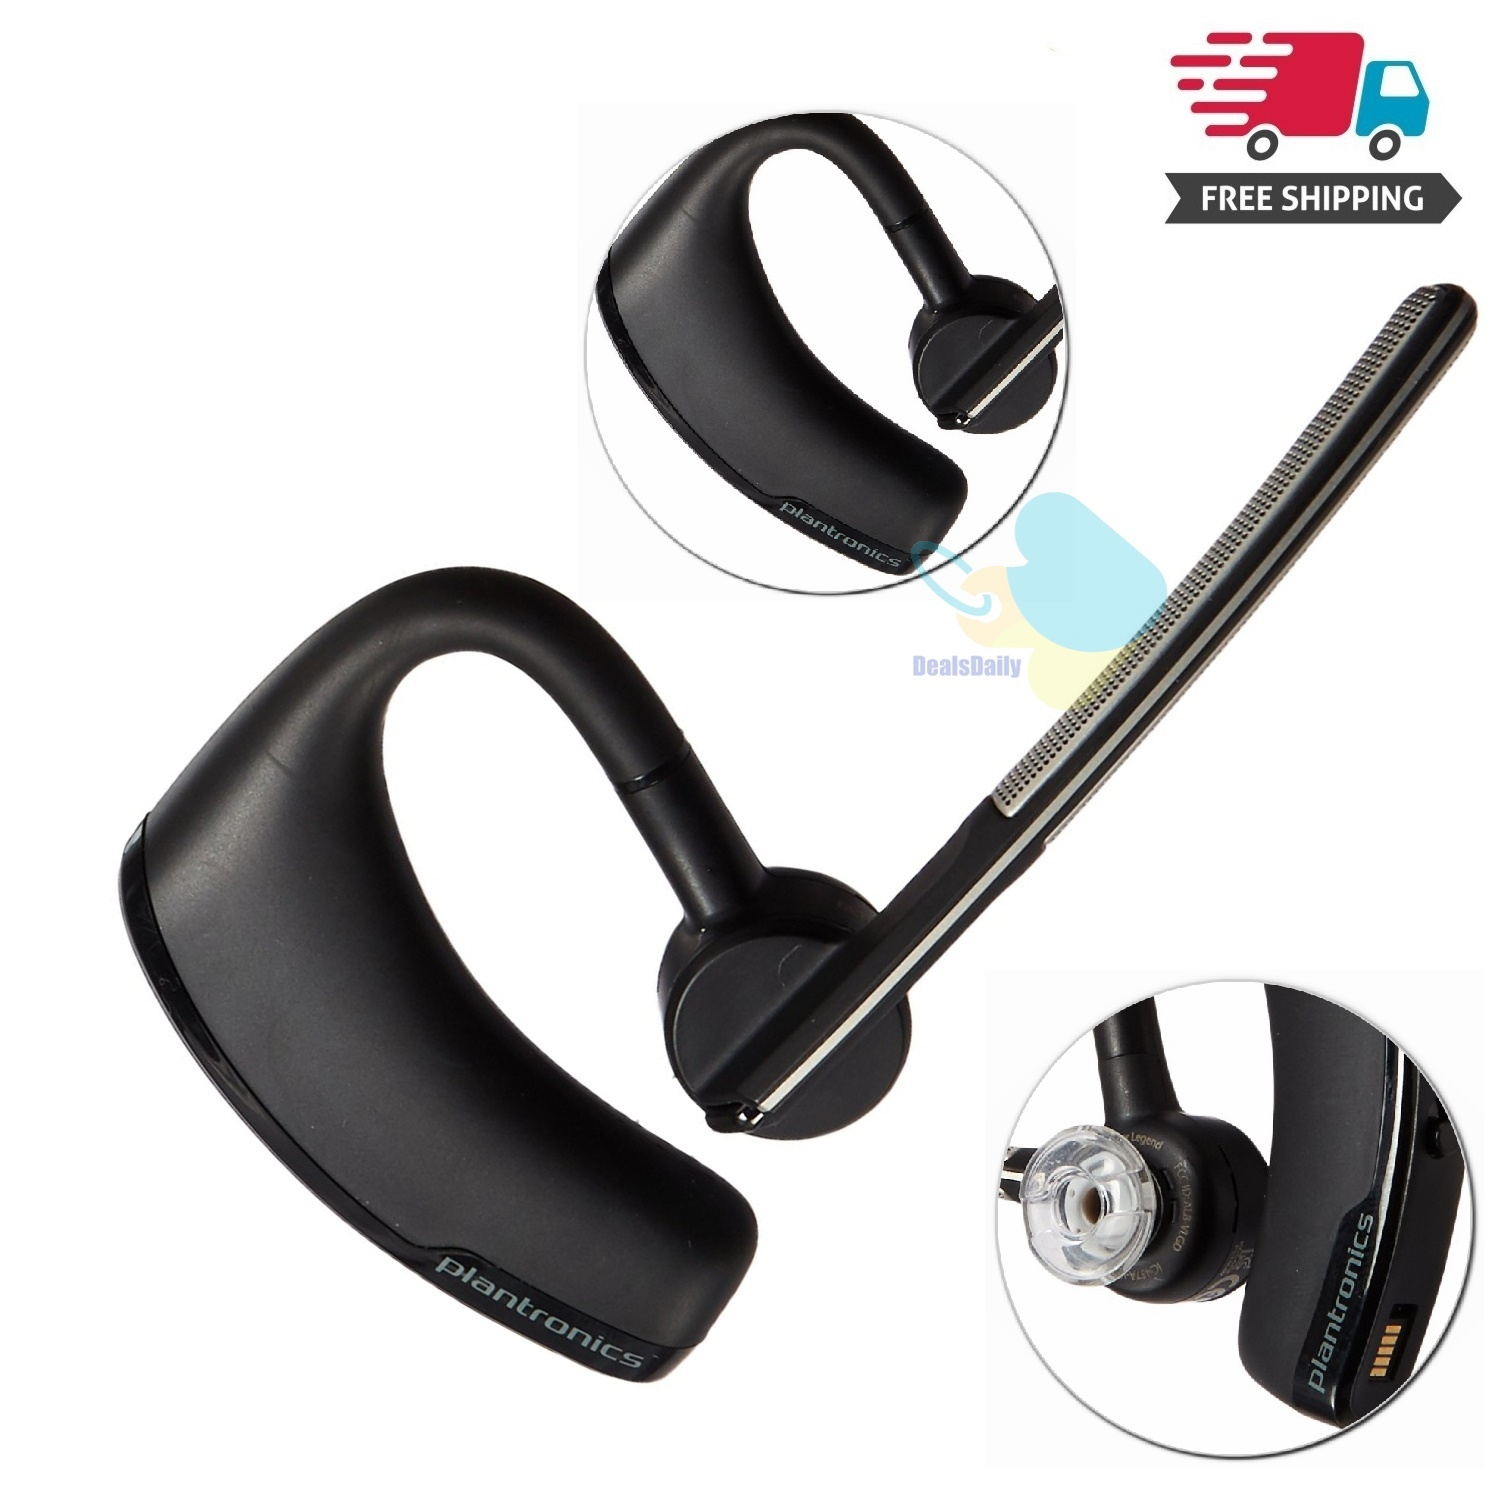 Plantronics Voyager Legend Uc B235 M Bluetooth Headset Retail Packaging Walmart Com Walmart Com